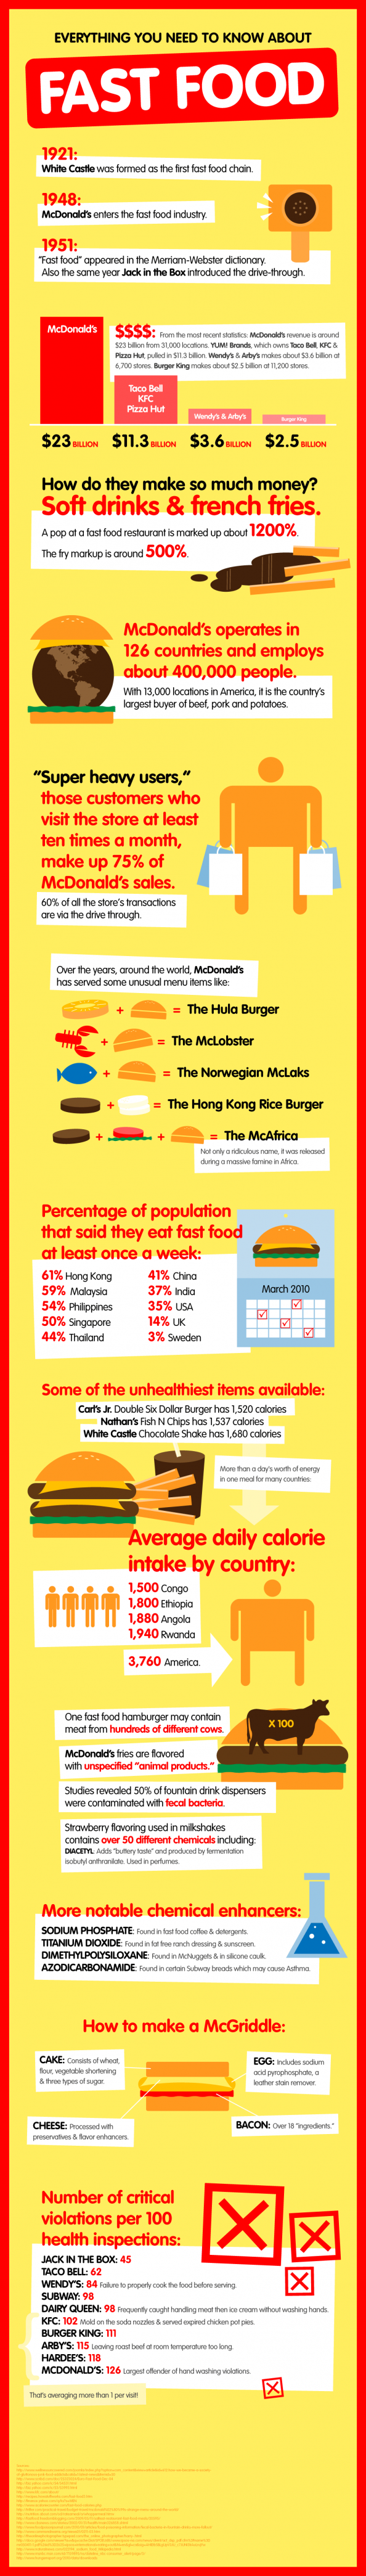 All About Fast Food Infographic